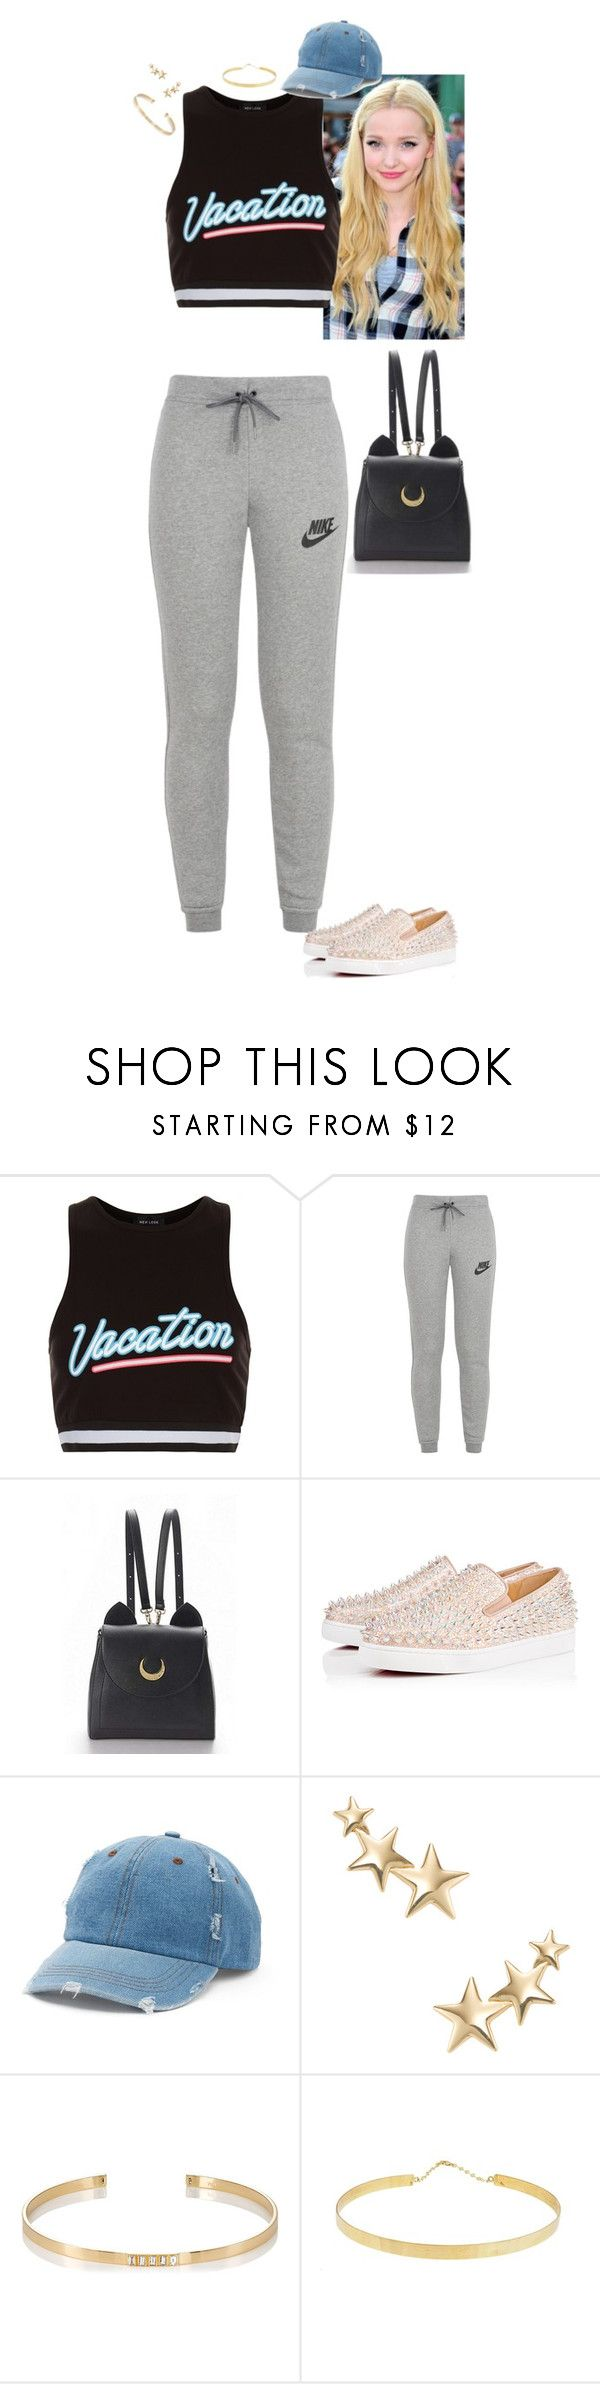 """Untitled #240"" by stinze on Polyvore featuring New Look, NIKE, WithChic, Christian Louboutin, Mudd, Kenneth Jay Lane, Ileana Makri and Lana Jewelry"